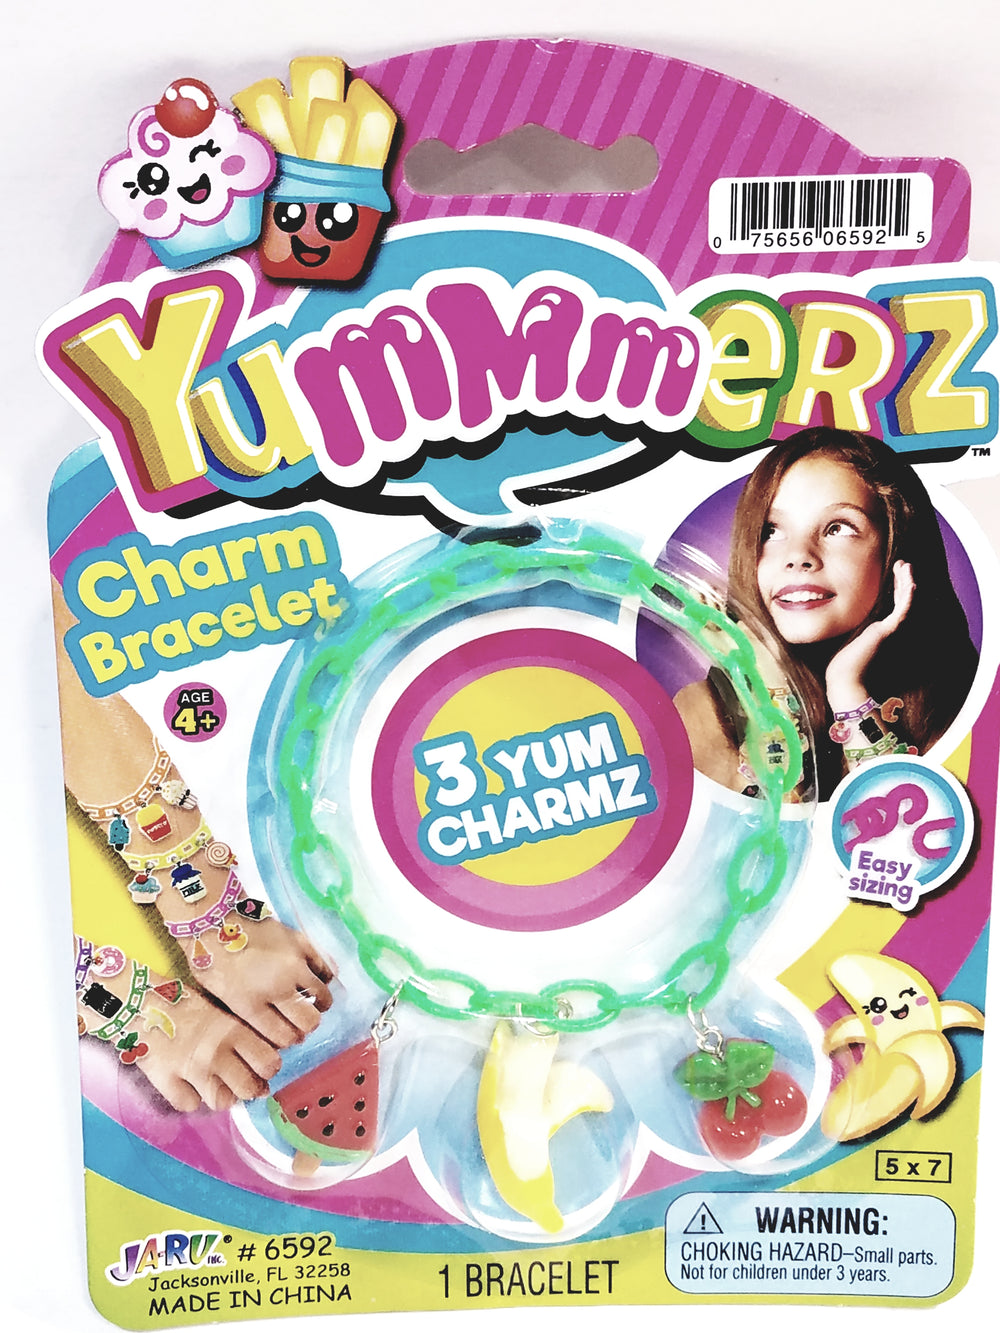 Yummmerz Lime Green Charm Bracelet & 3 Yum Charms Set with EZ Sizing